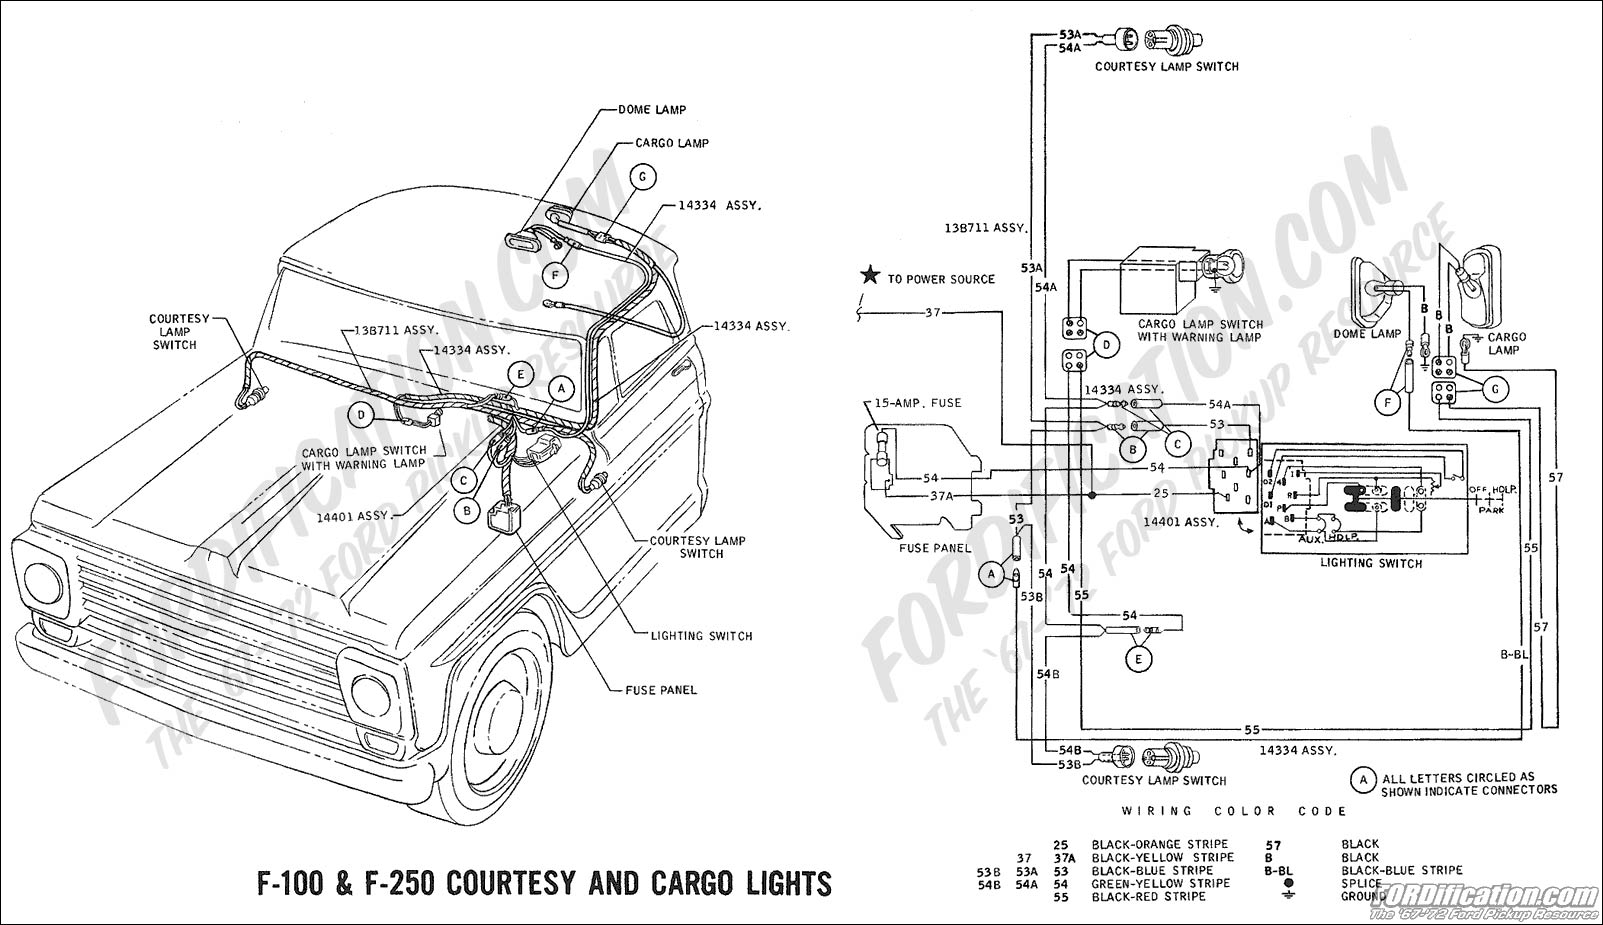 71 Ford F100 Wiring Diagram Diagrams 1970 Buick Skylark Truck Technical Drawings And Schematics Section H Harness